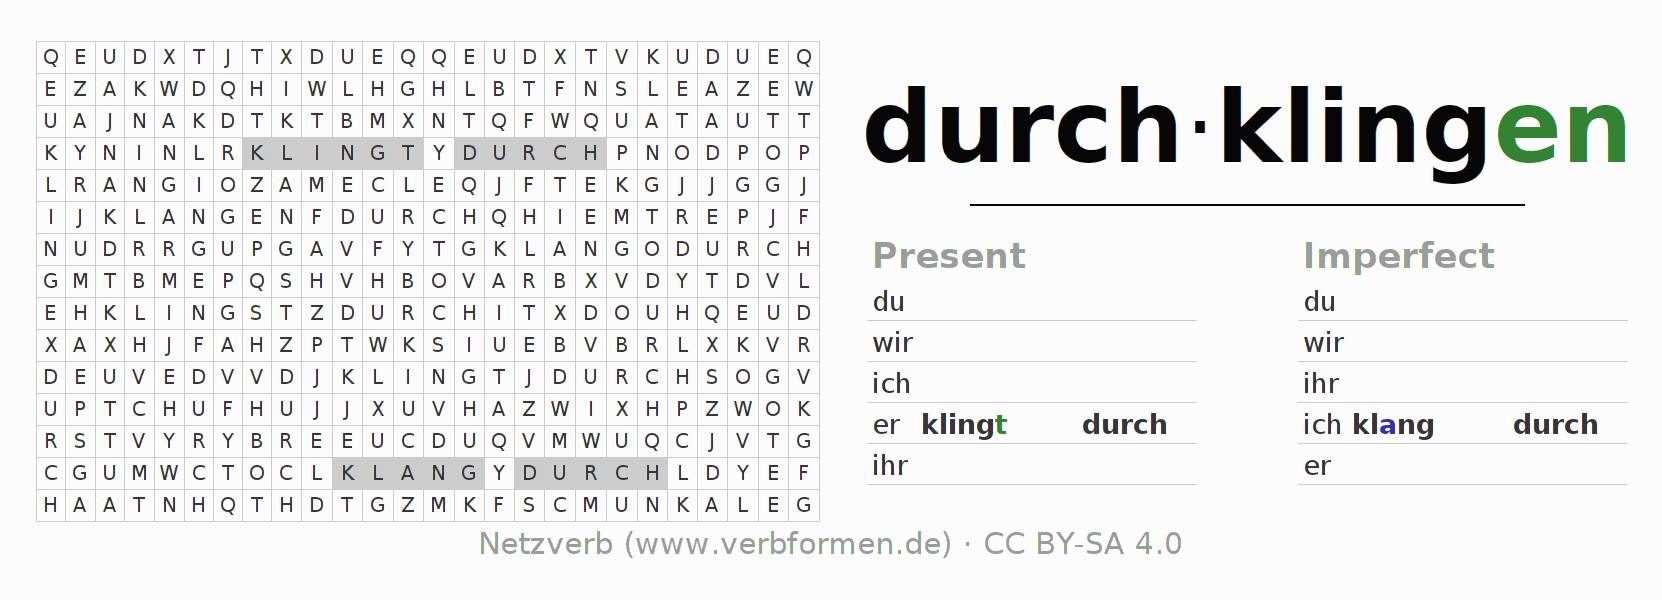 Word search puzzle for the conjugation of the verb durch-klingen (ist)